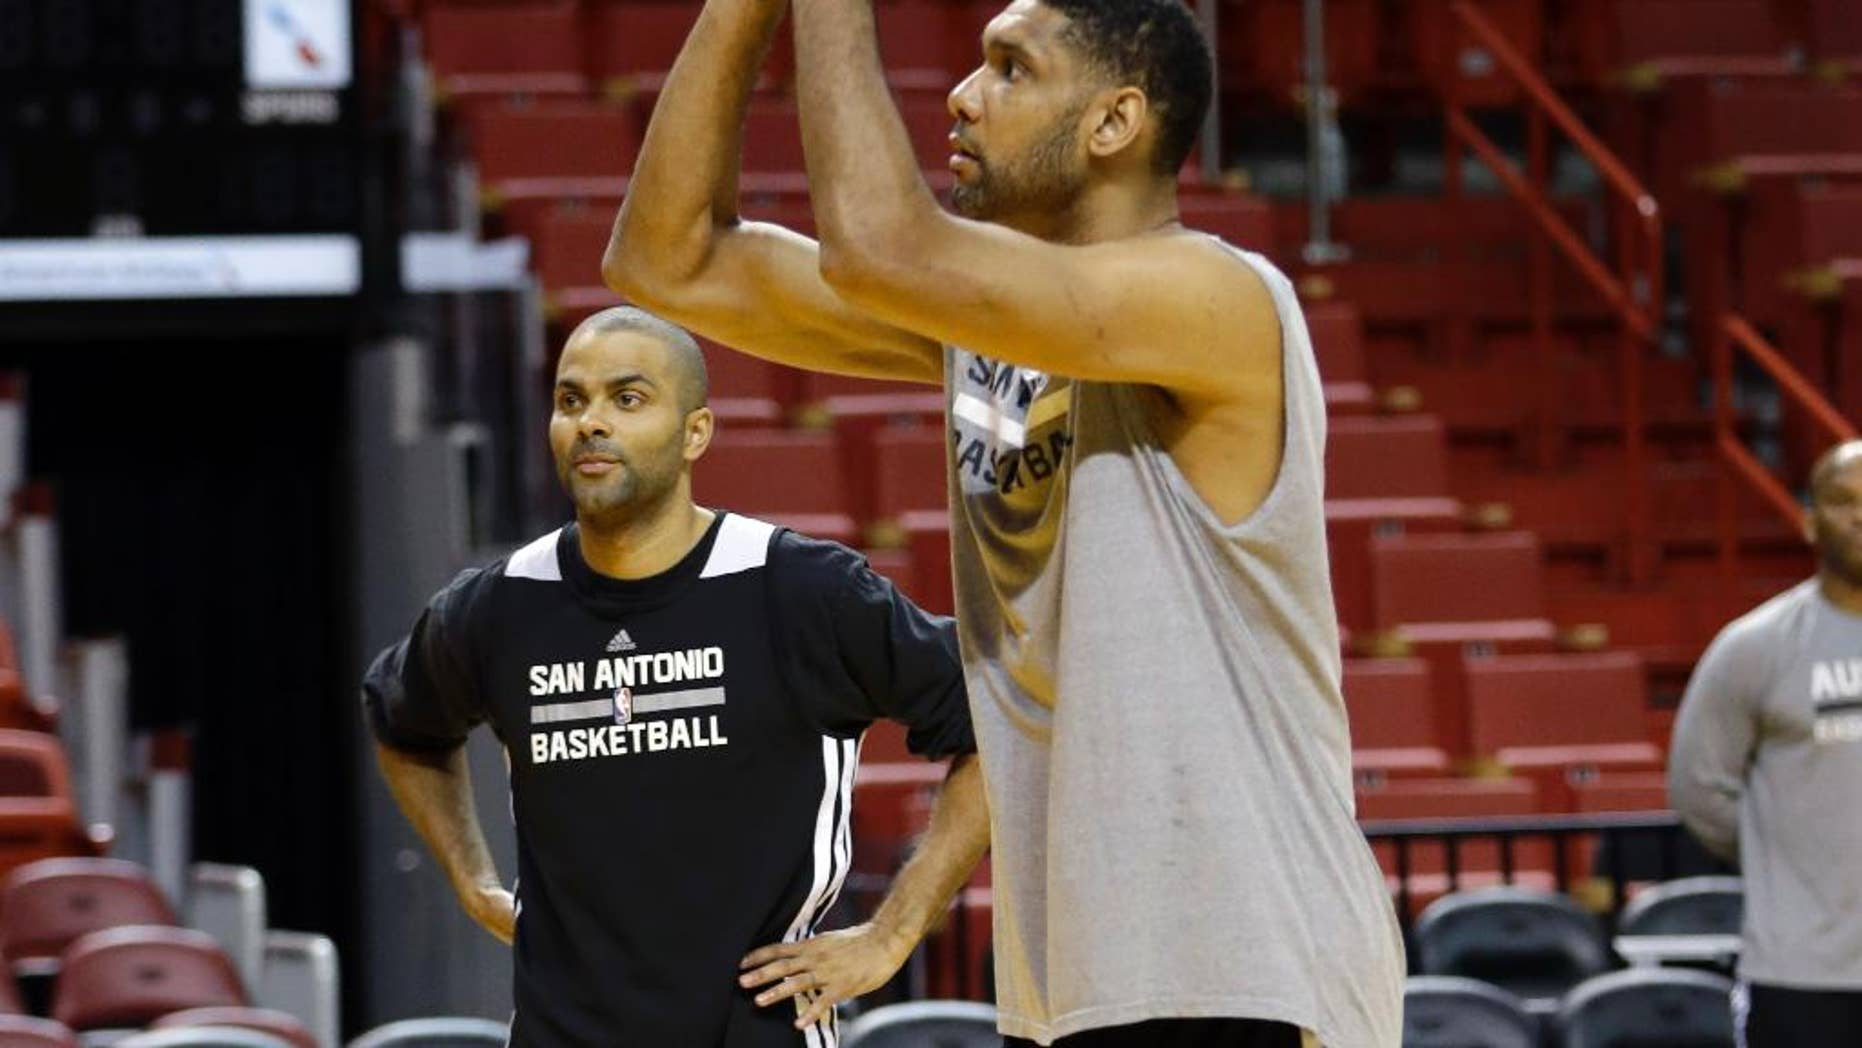 San Antonio Spurs' Tim Duncan, right, shoots as Tony Parker, left, looks on  during basketball practice at the NBA Finals, Wednesday, June 11, 2014, in Miami. The Spurs lead the Miami Heat 2-1 in the best-of-seven games series. (AP Photo/Lynne Sladky)